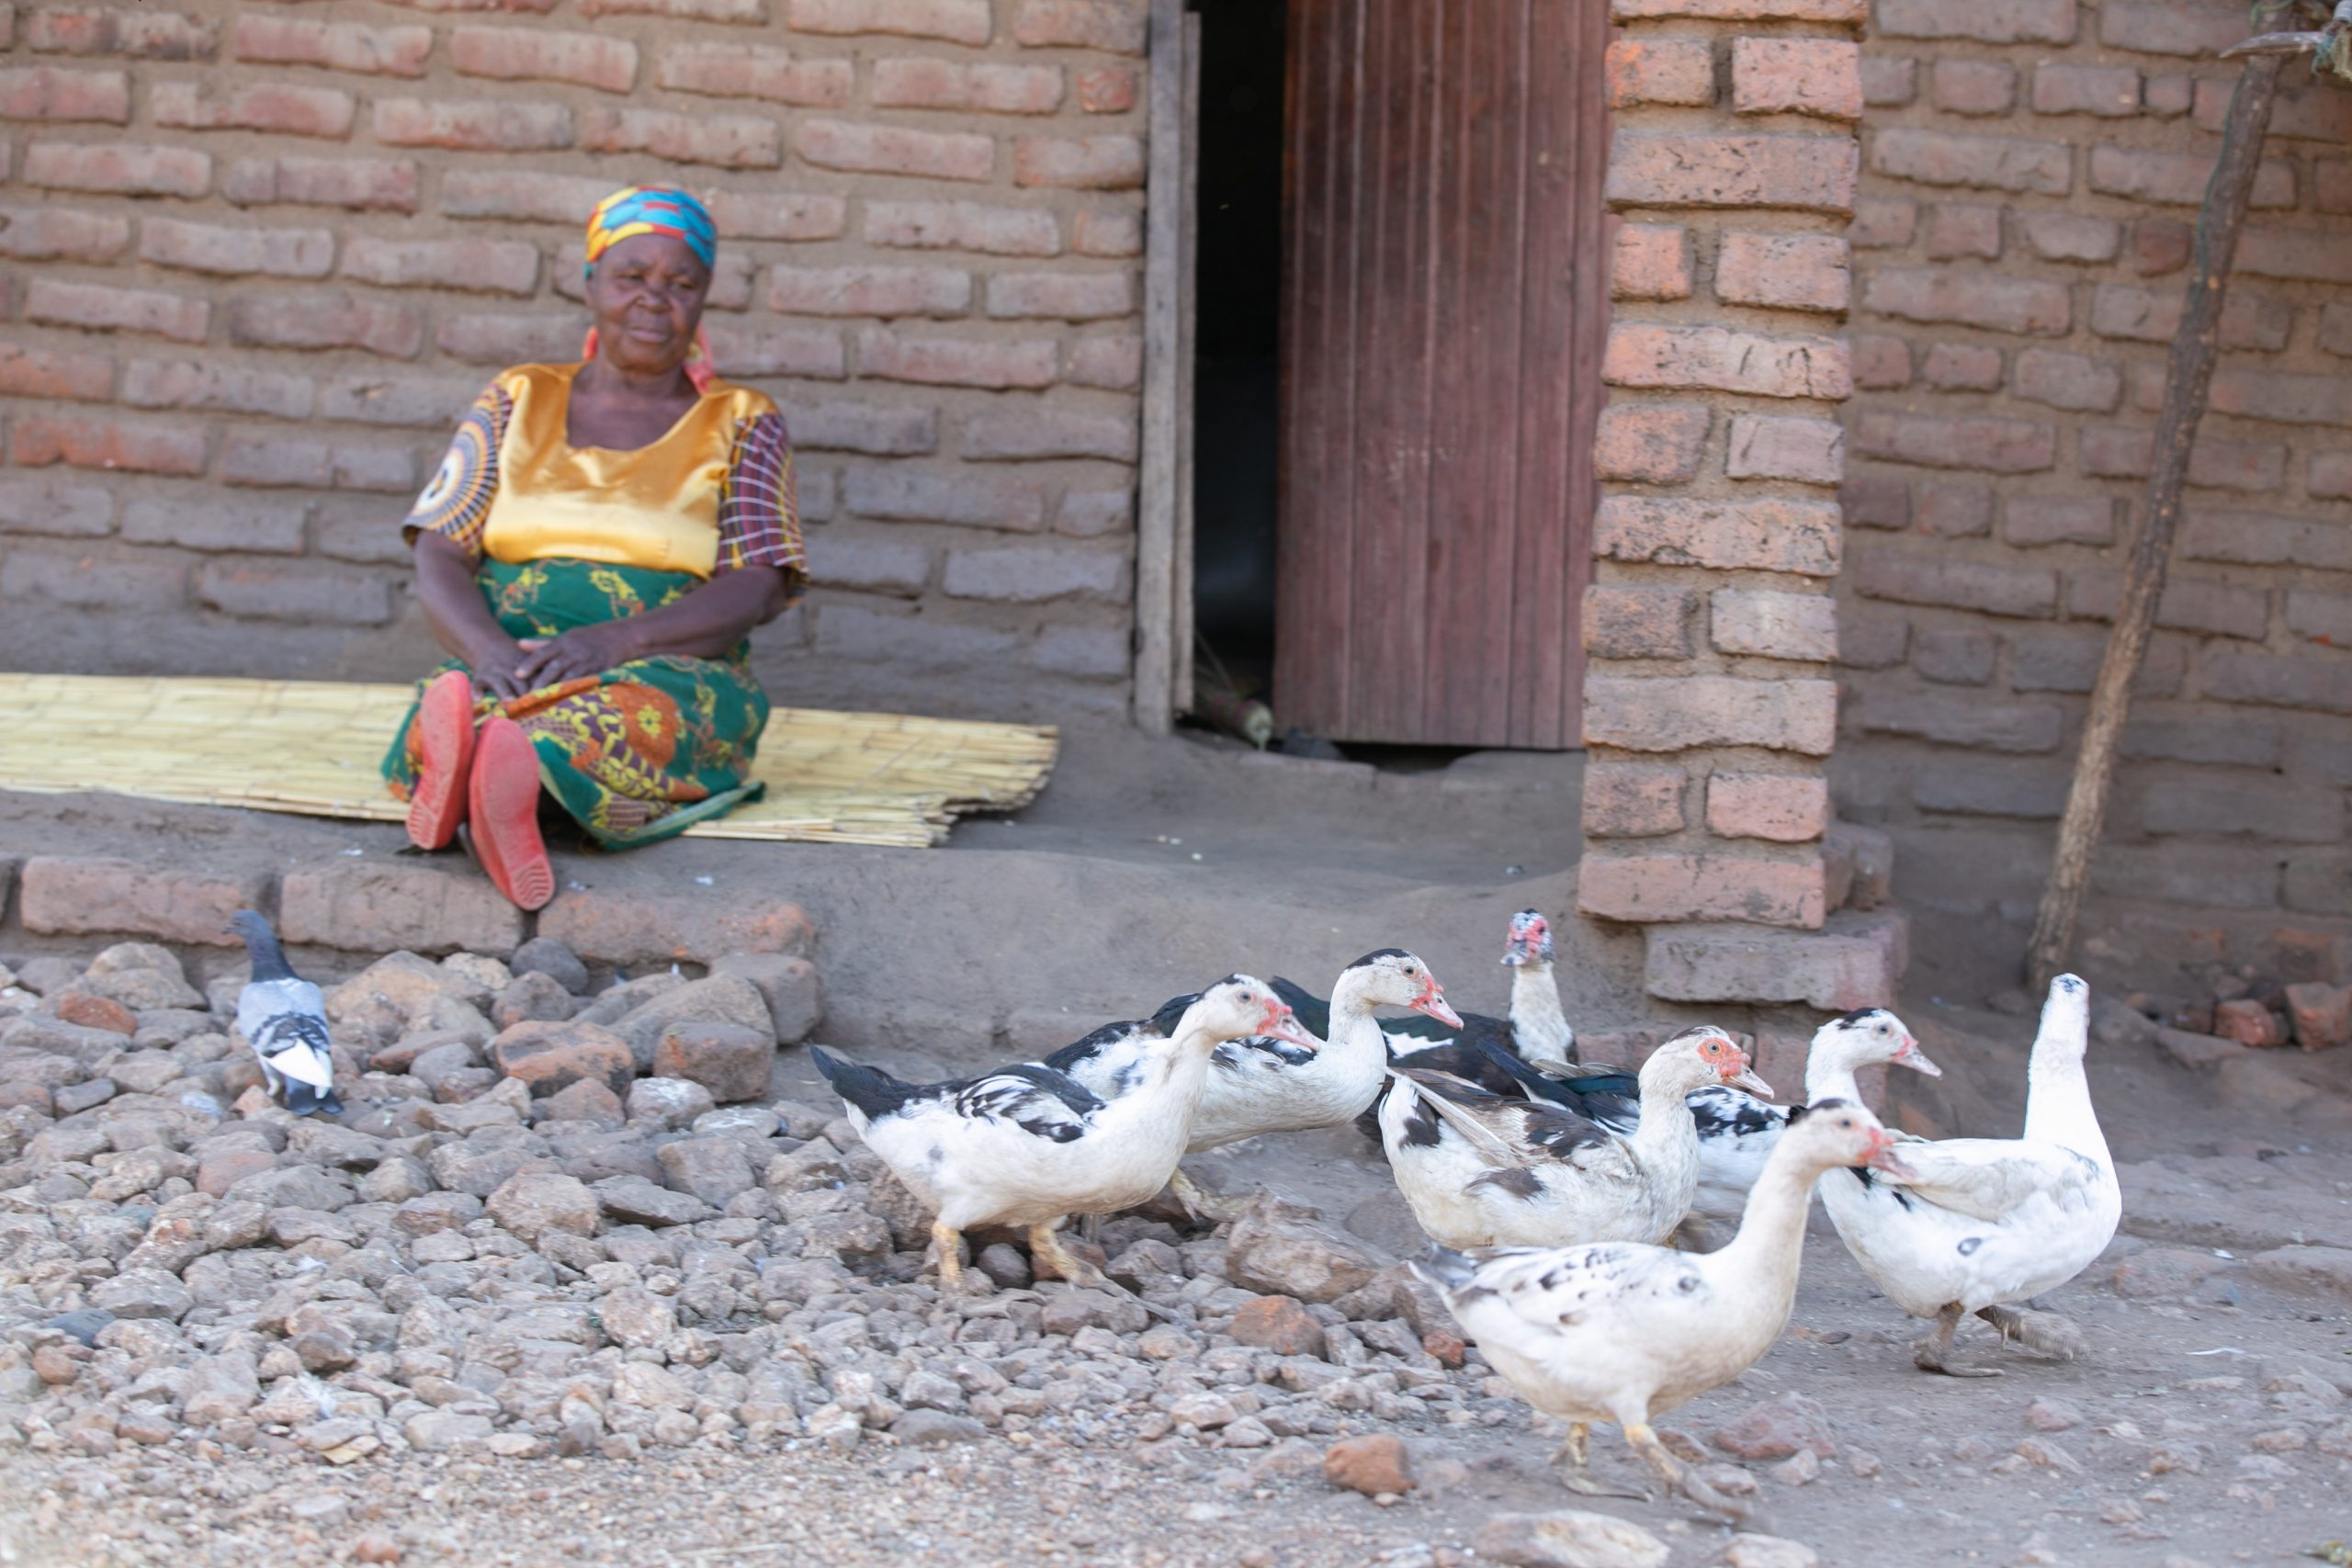 210507 HelpAge, Malawi_Fairpicture_Catherine_Robert_001 -2